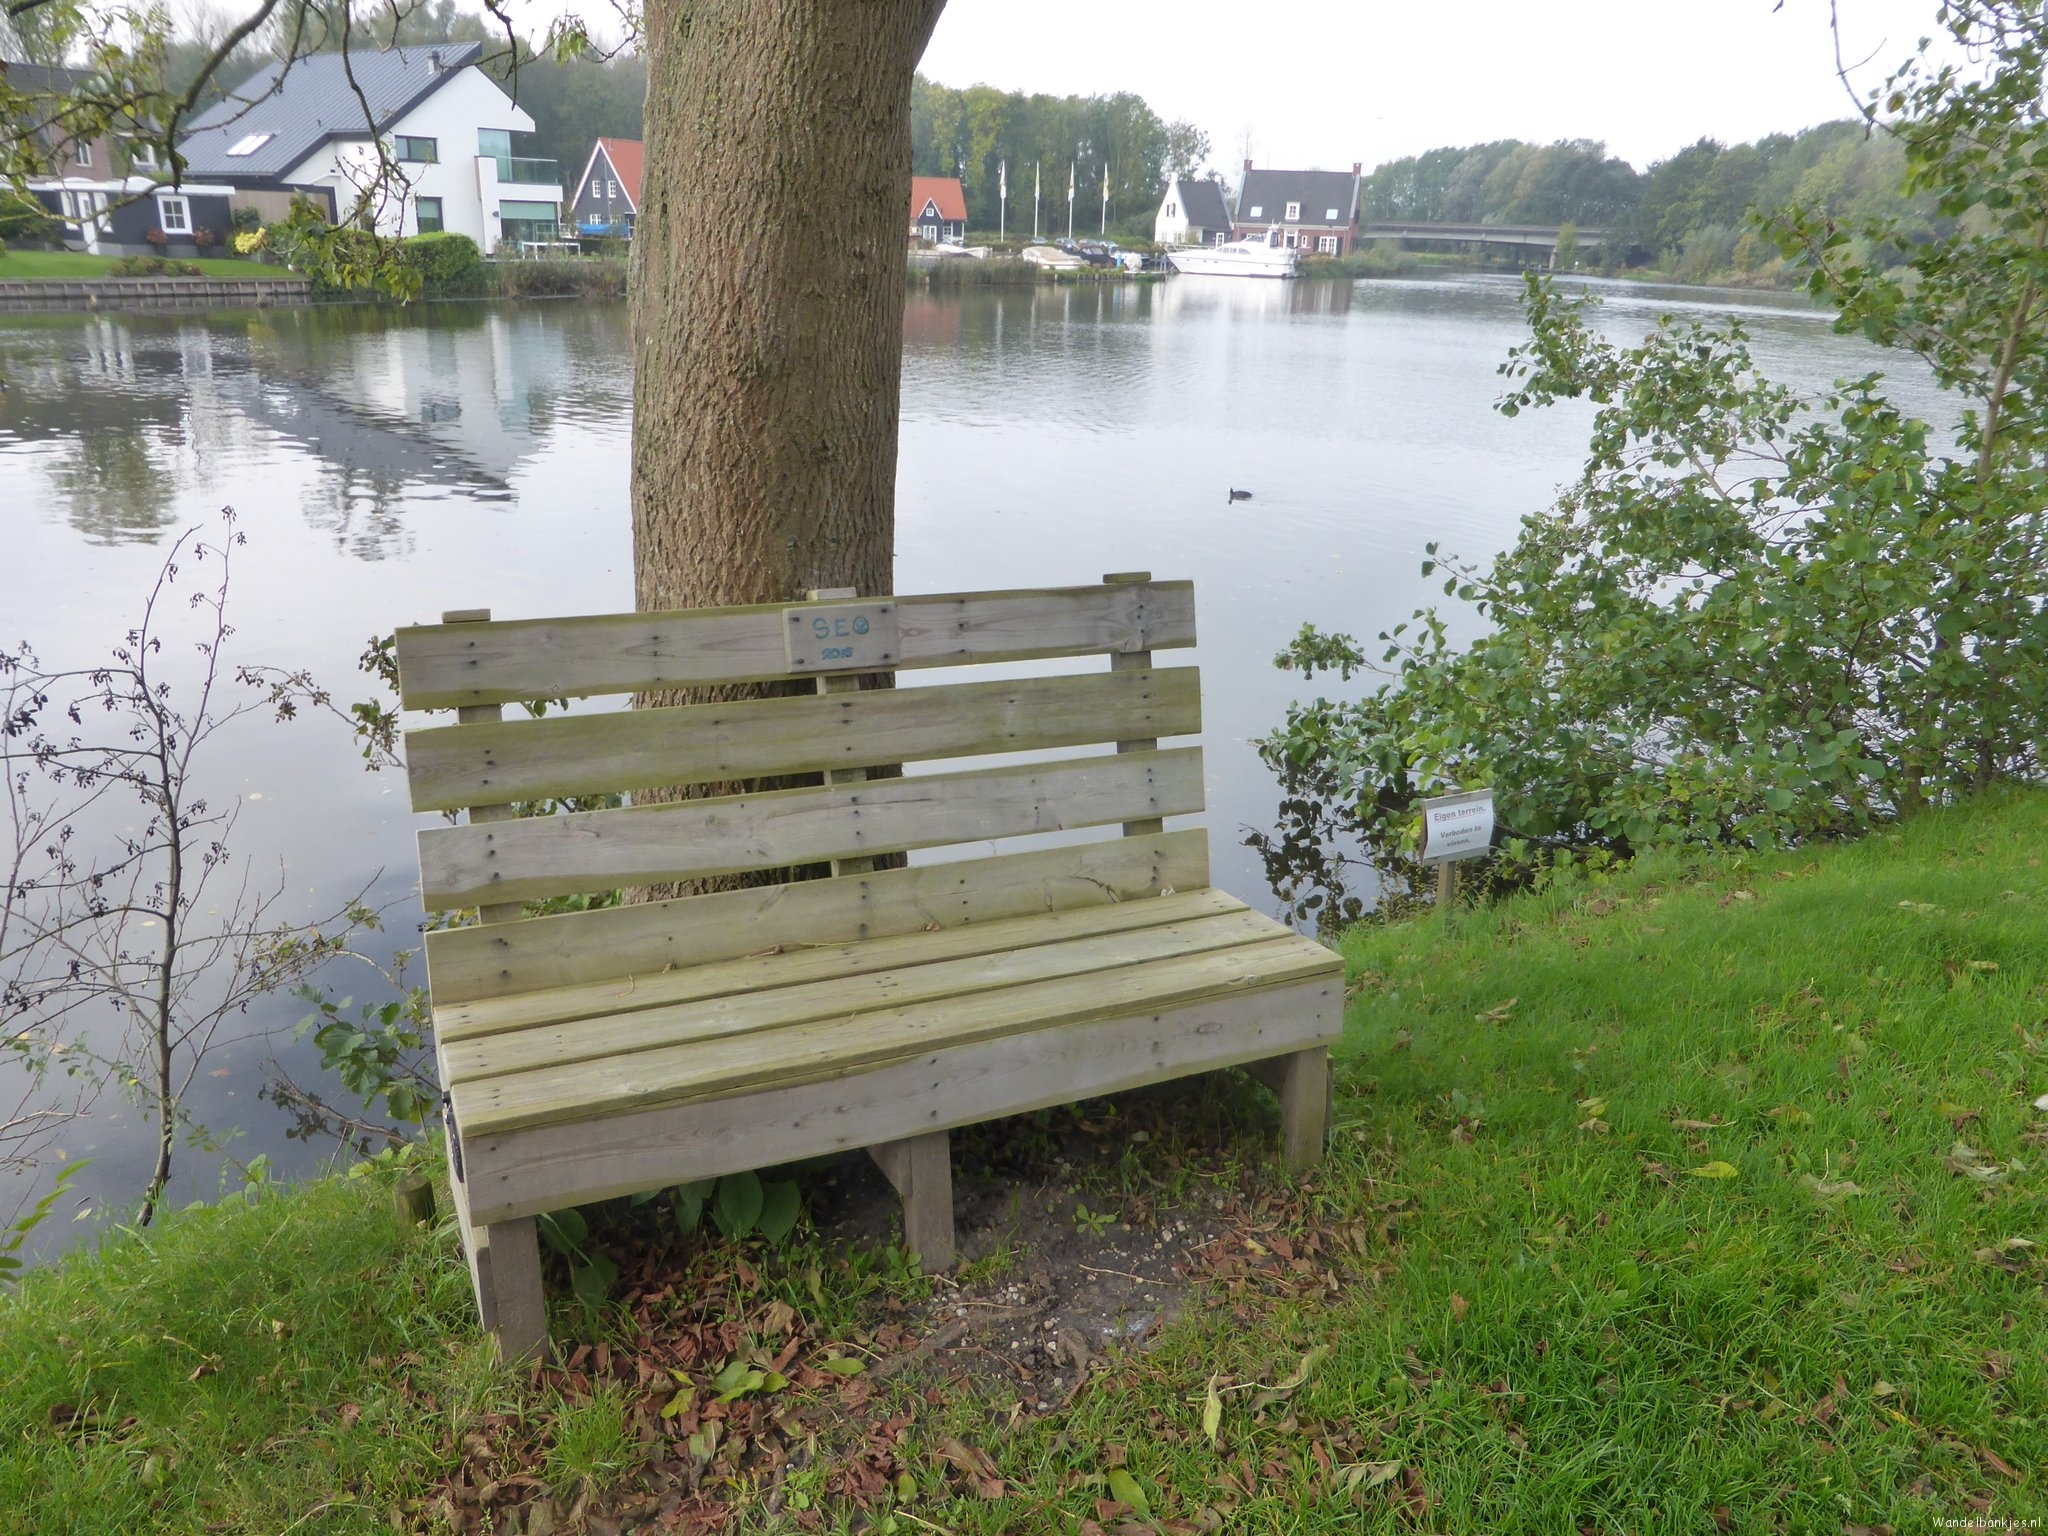 rt-willemwandelt-thenetherlands-utrecht-maarssen-oudzuilen-fight-walking-bench-utrechtpad-walking-benches-https-t-co-3f22kq3tq5